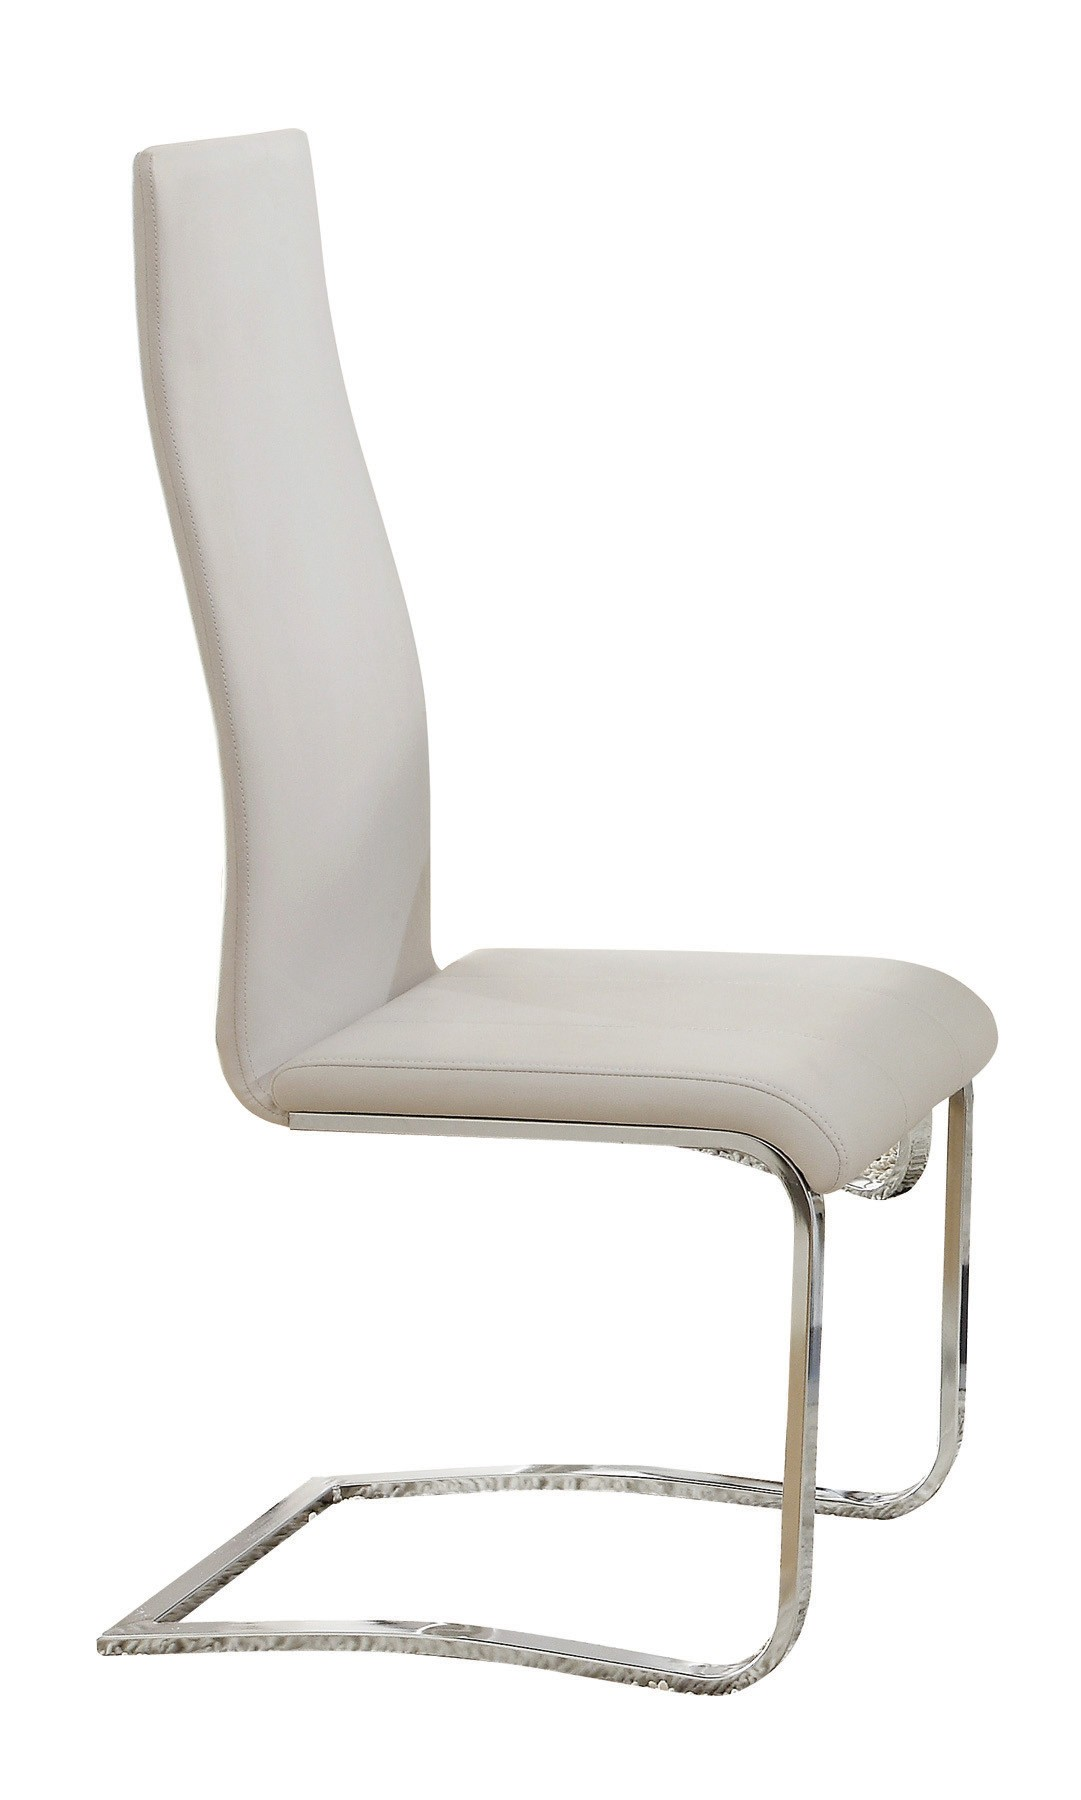 Mid century modern dining faux leather white dining chairs for Mid century modern leather chairs